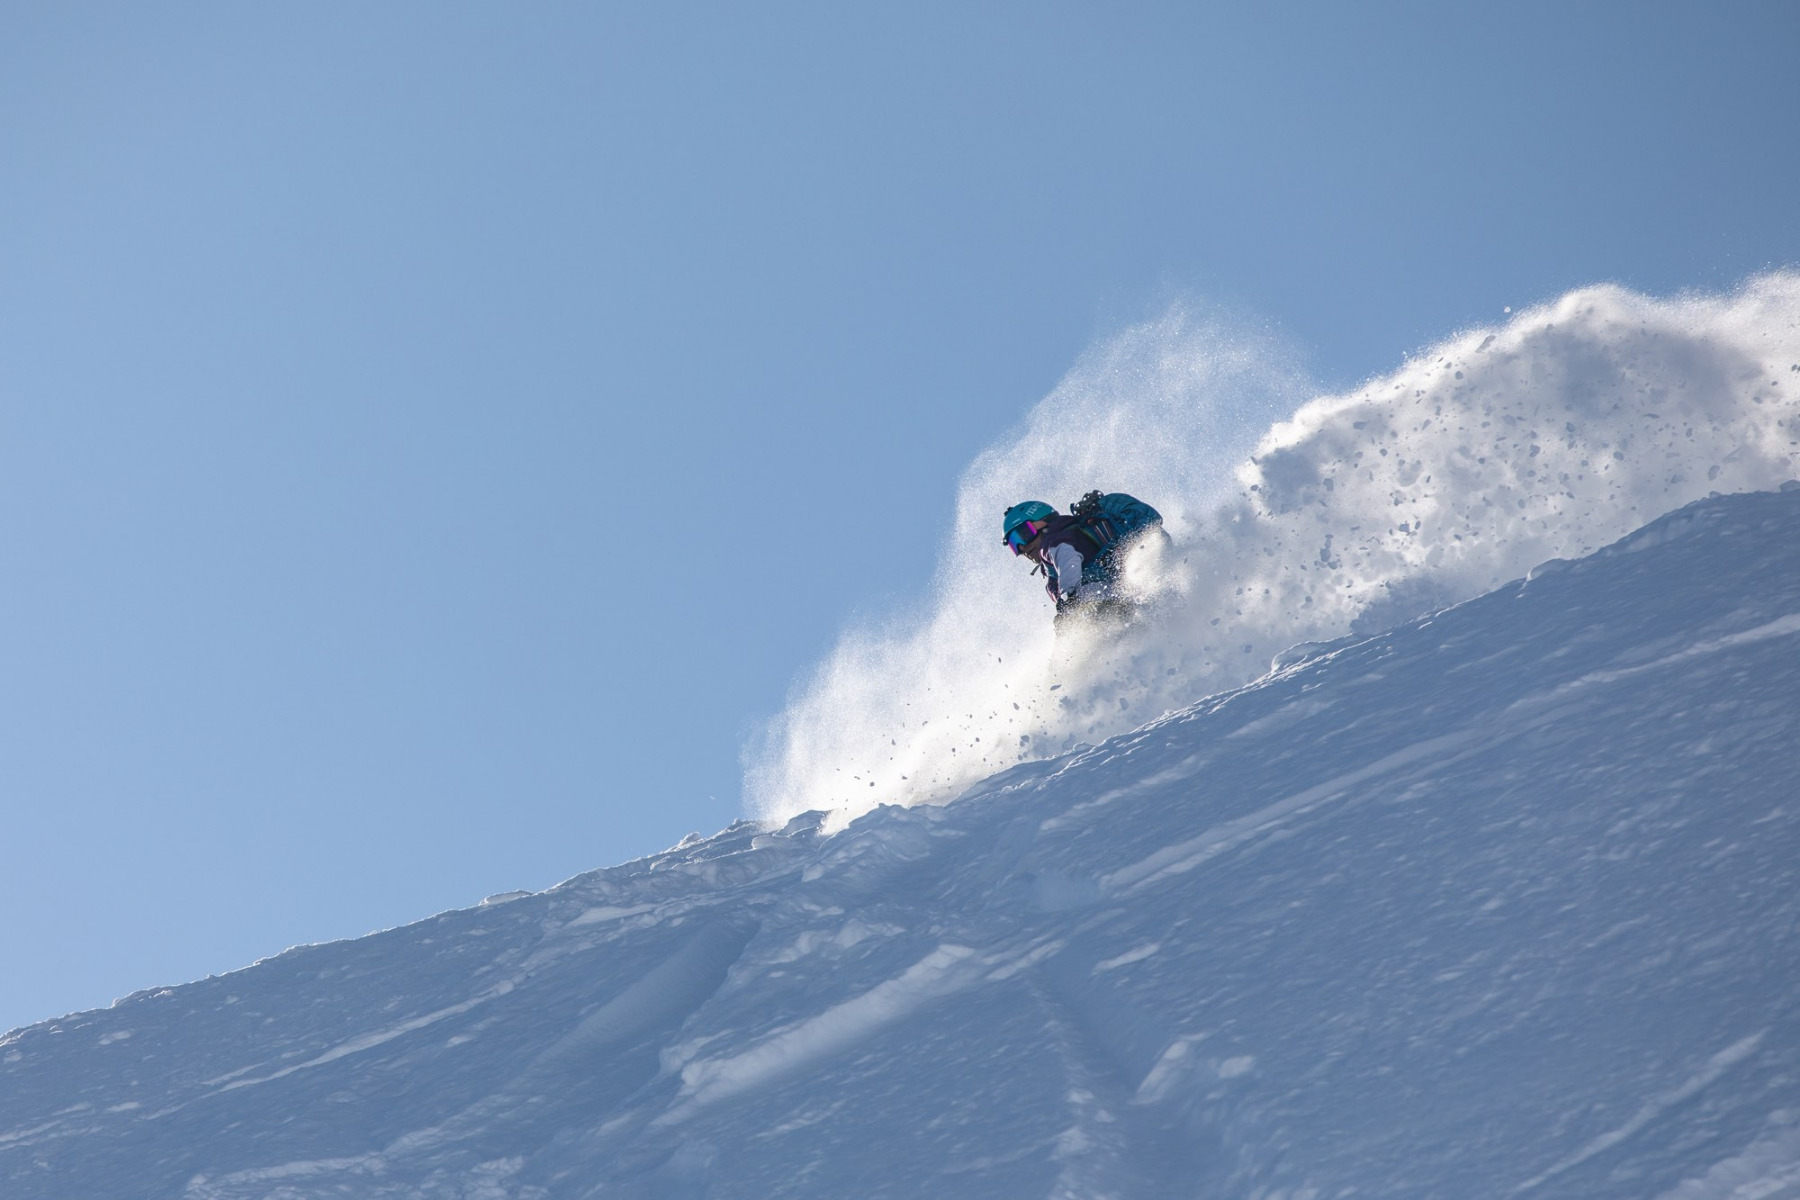 Dani Reyes-Acosta carves a steep powder turn on her snowboard with a blue sky background.